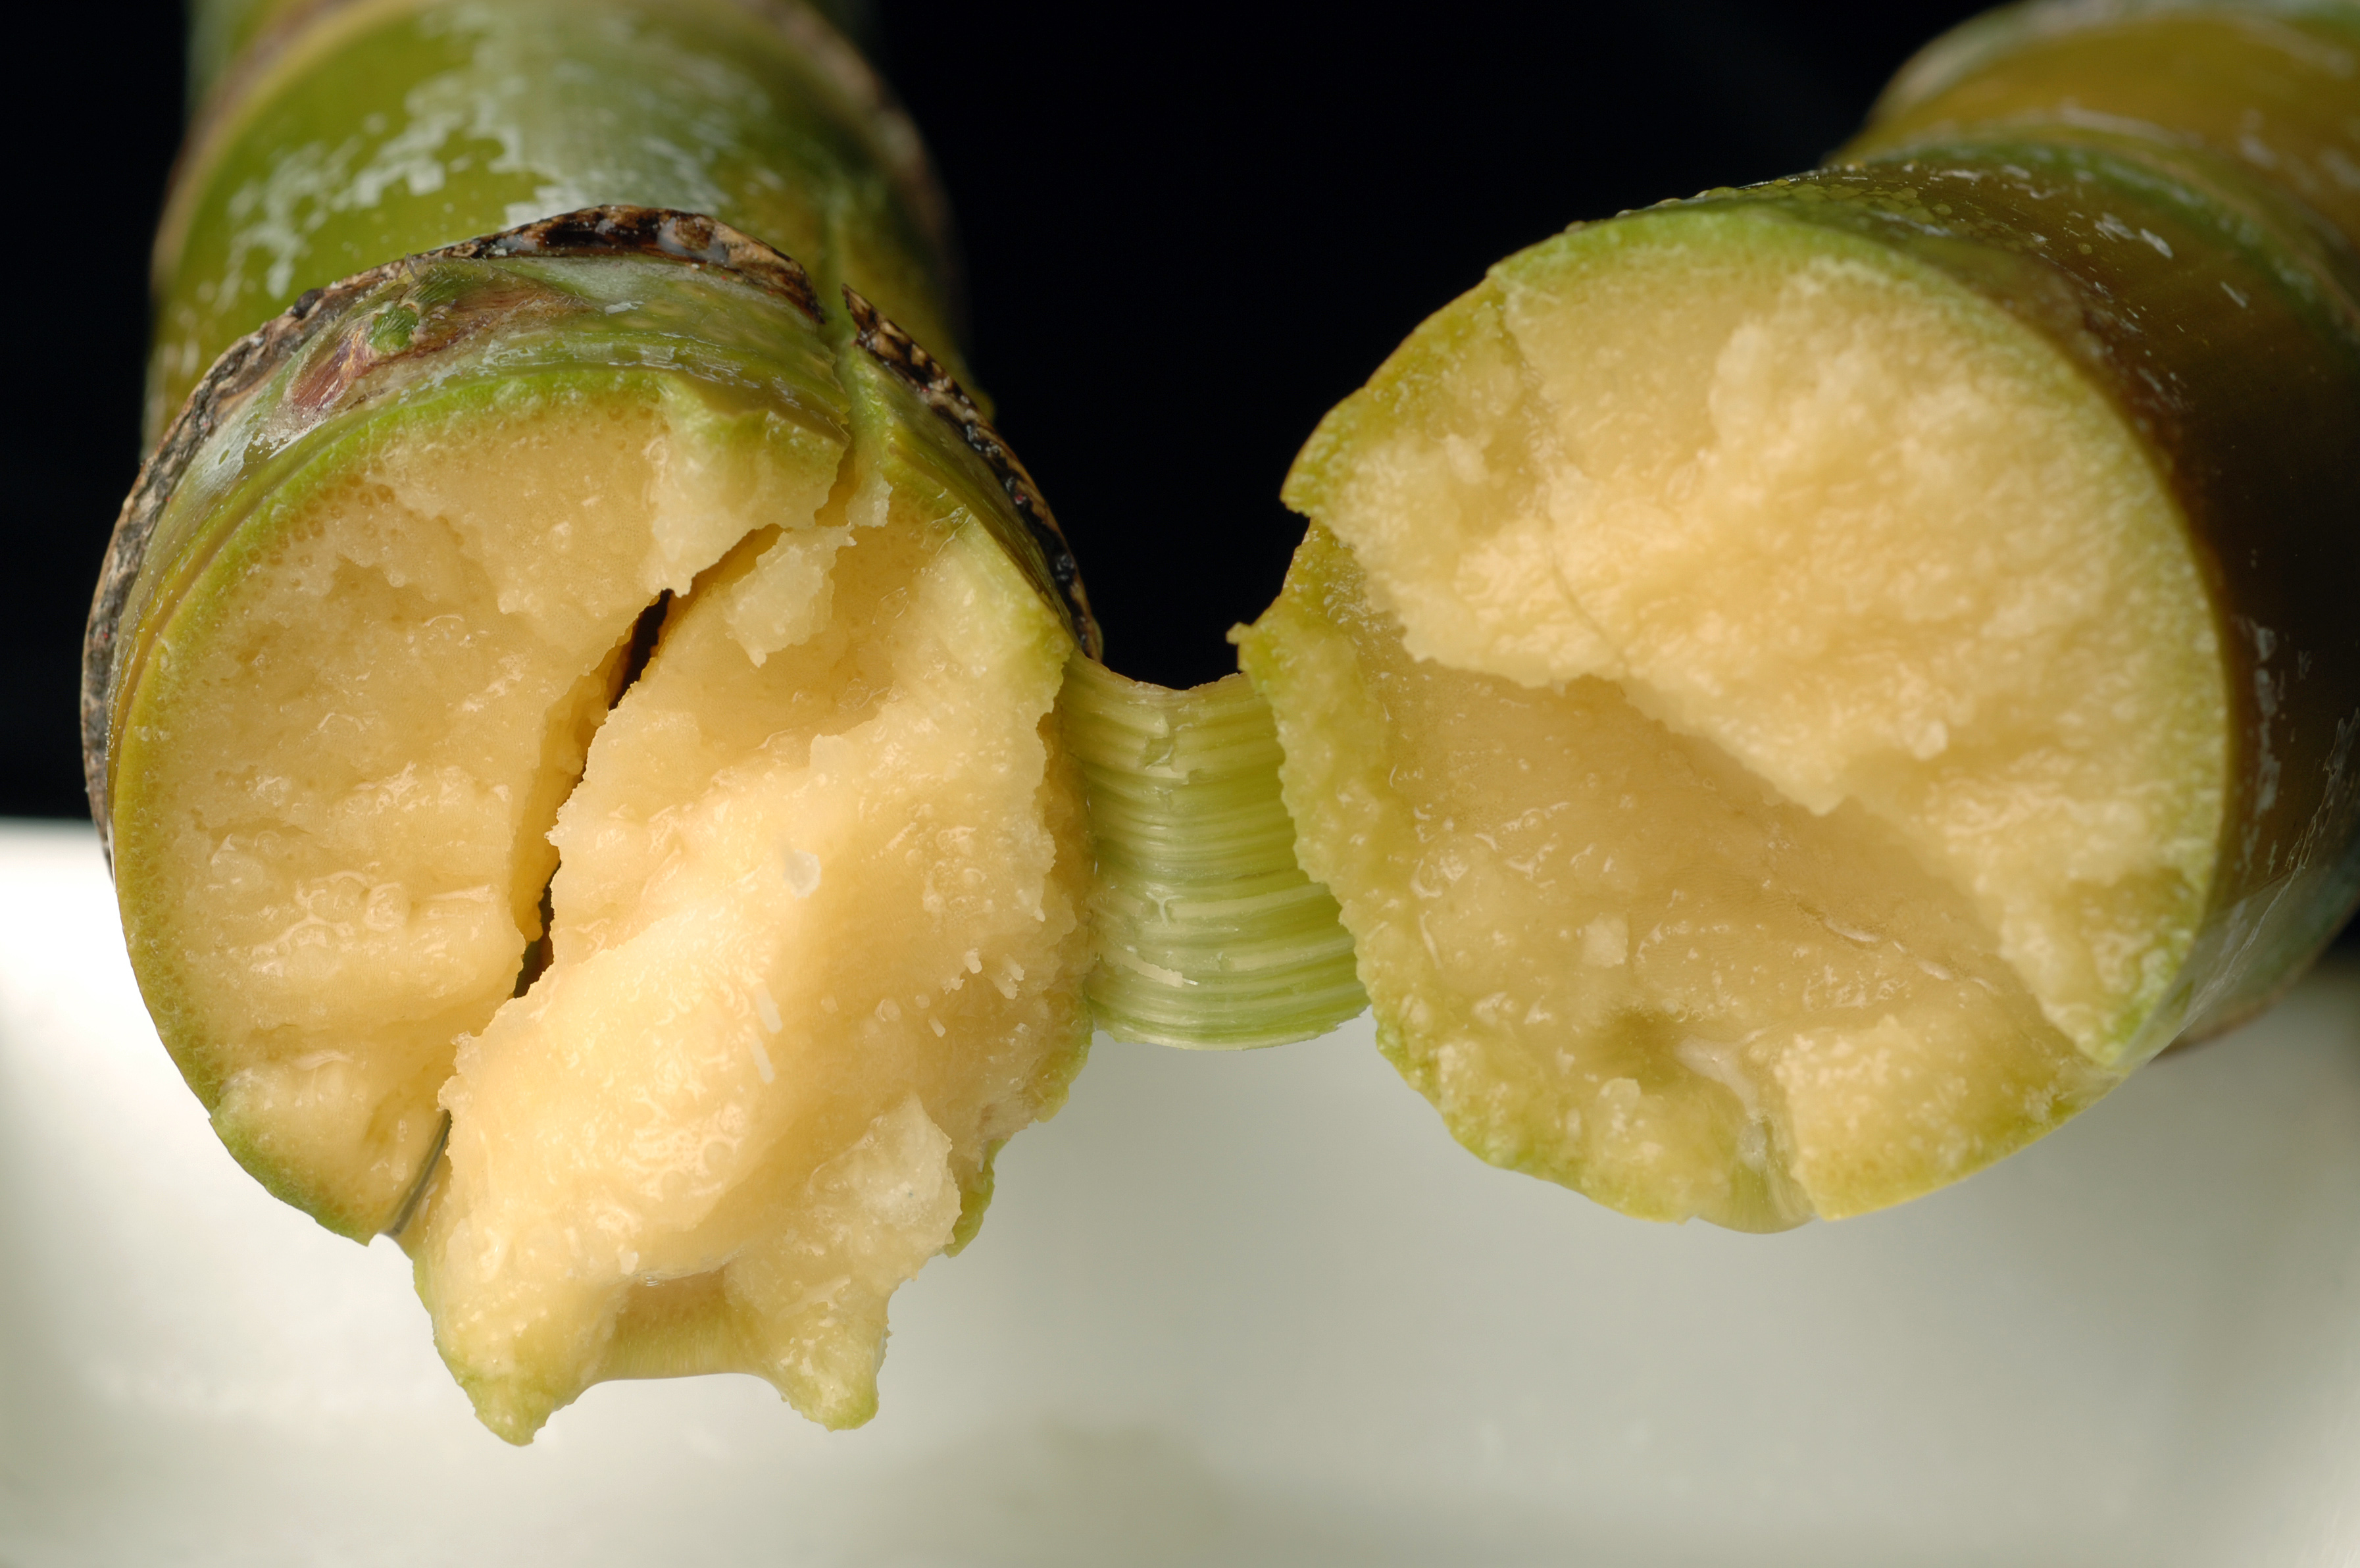 A green sugarcane snapped in two with the two cross-sections facing the viewer. The inside fo the cane looks juicy and grainy in a yellow gold hue.